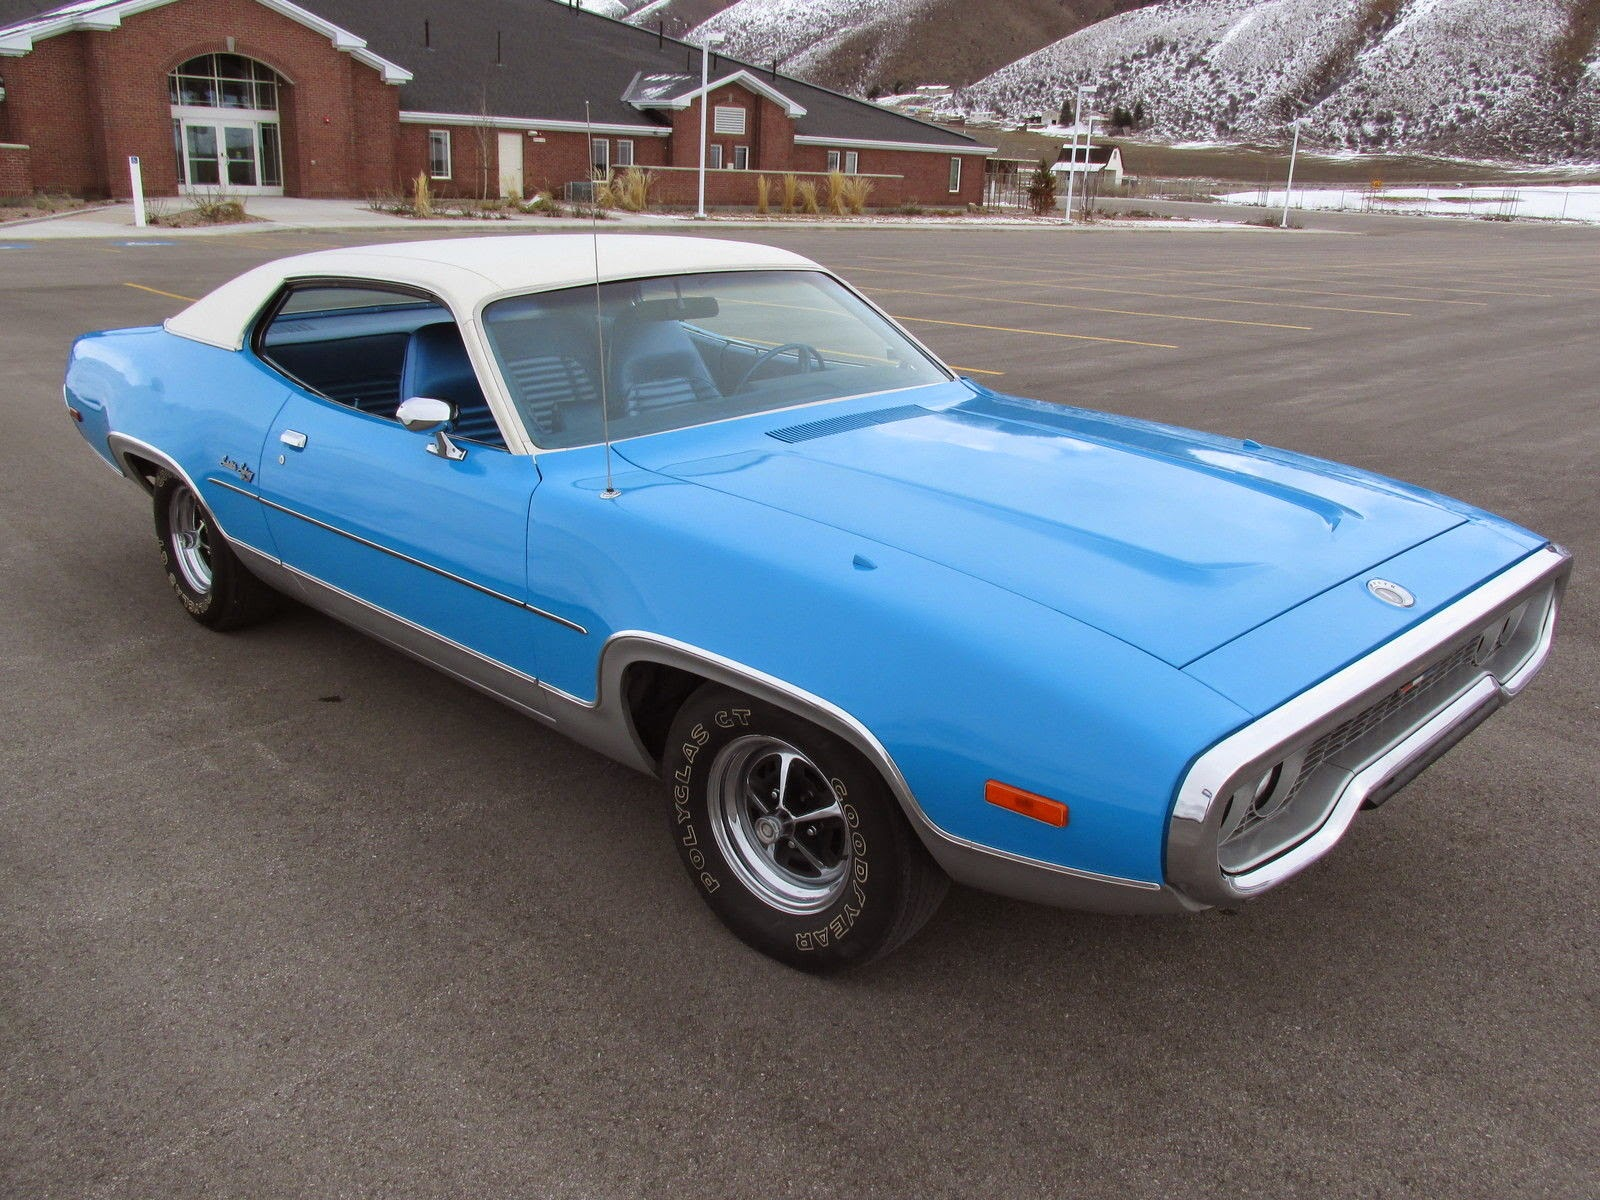 small resolution of 1972 plymouth satellite sebring plus 2 door hardtop